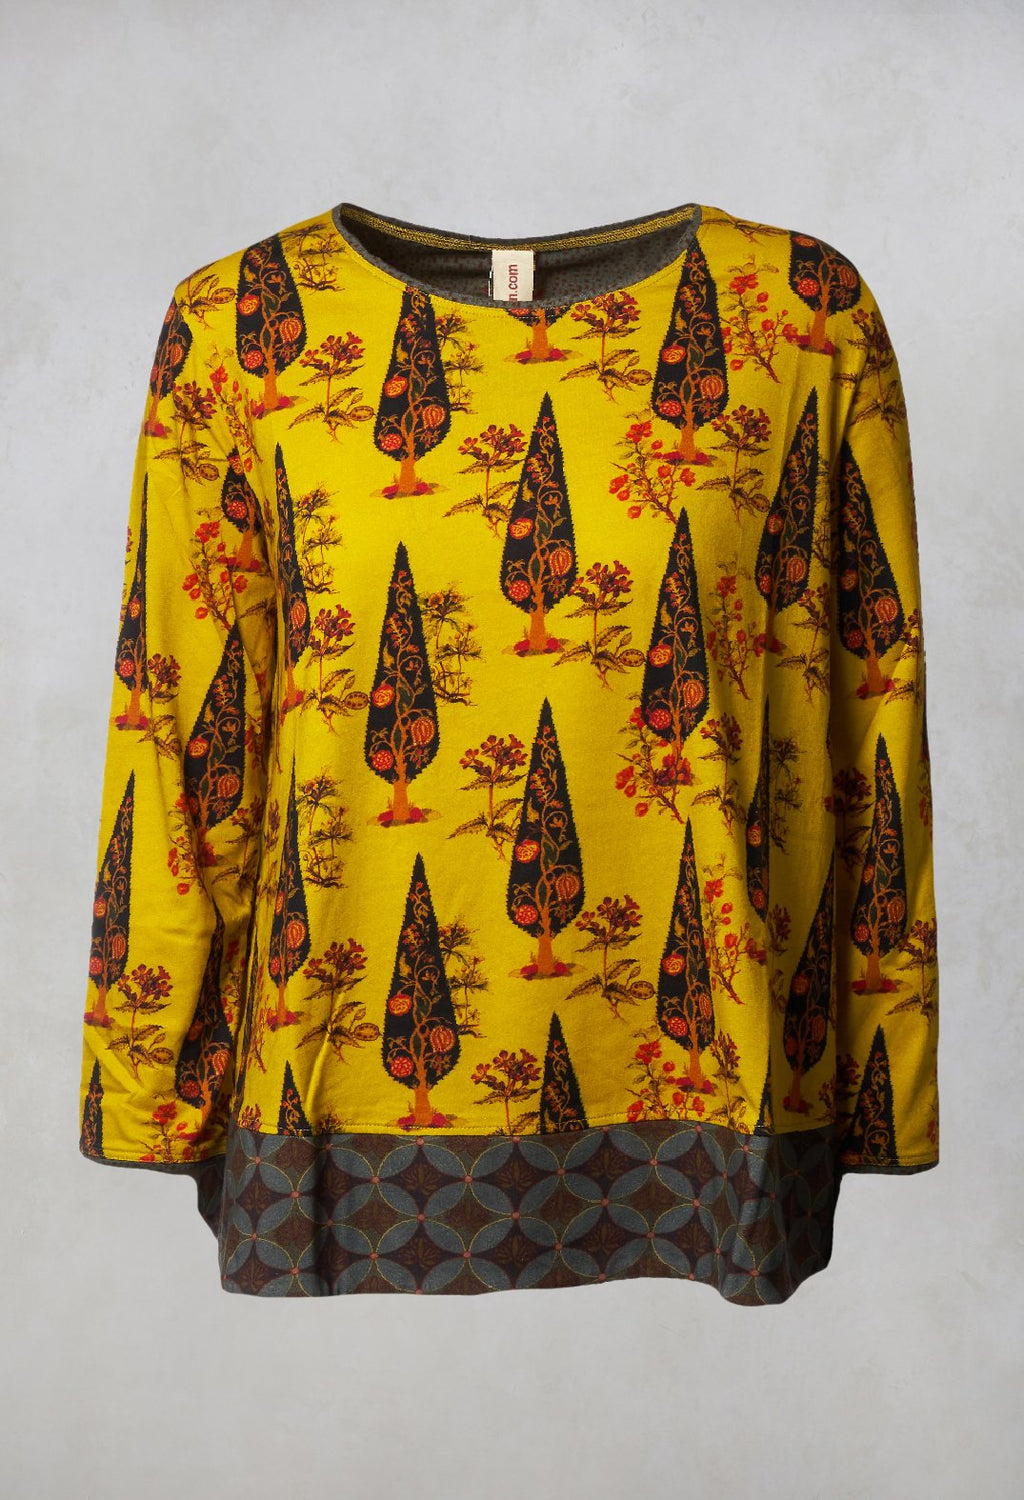 Patterned Top in Lemon Curry